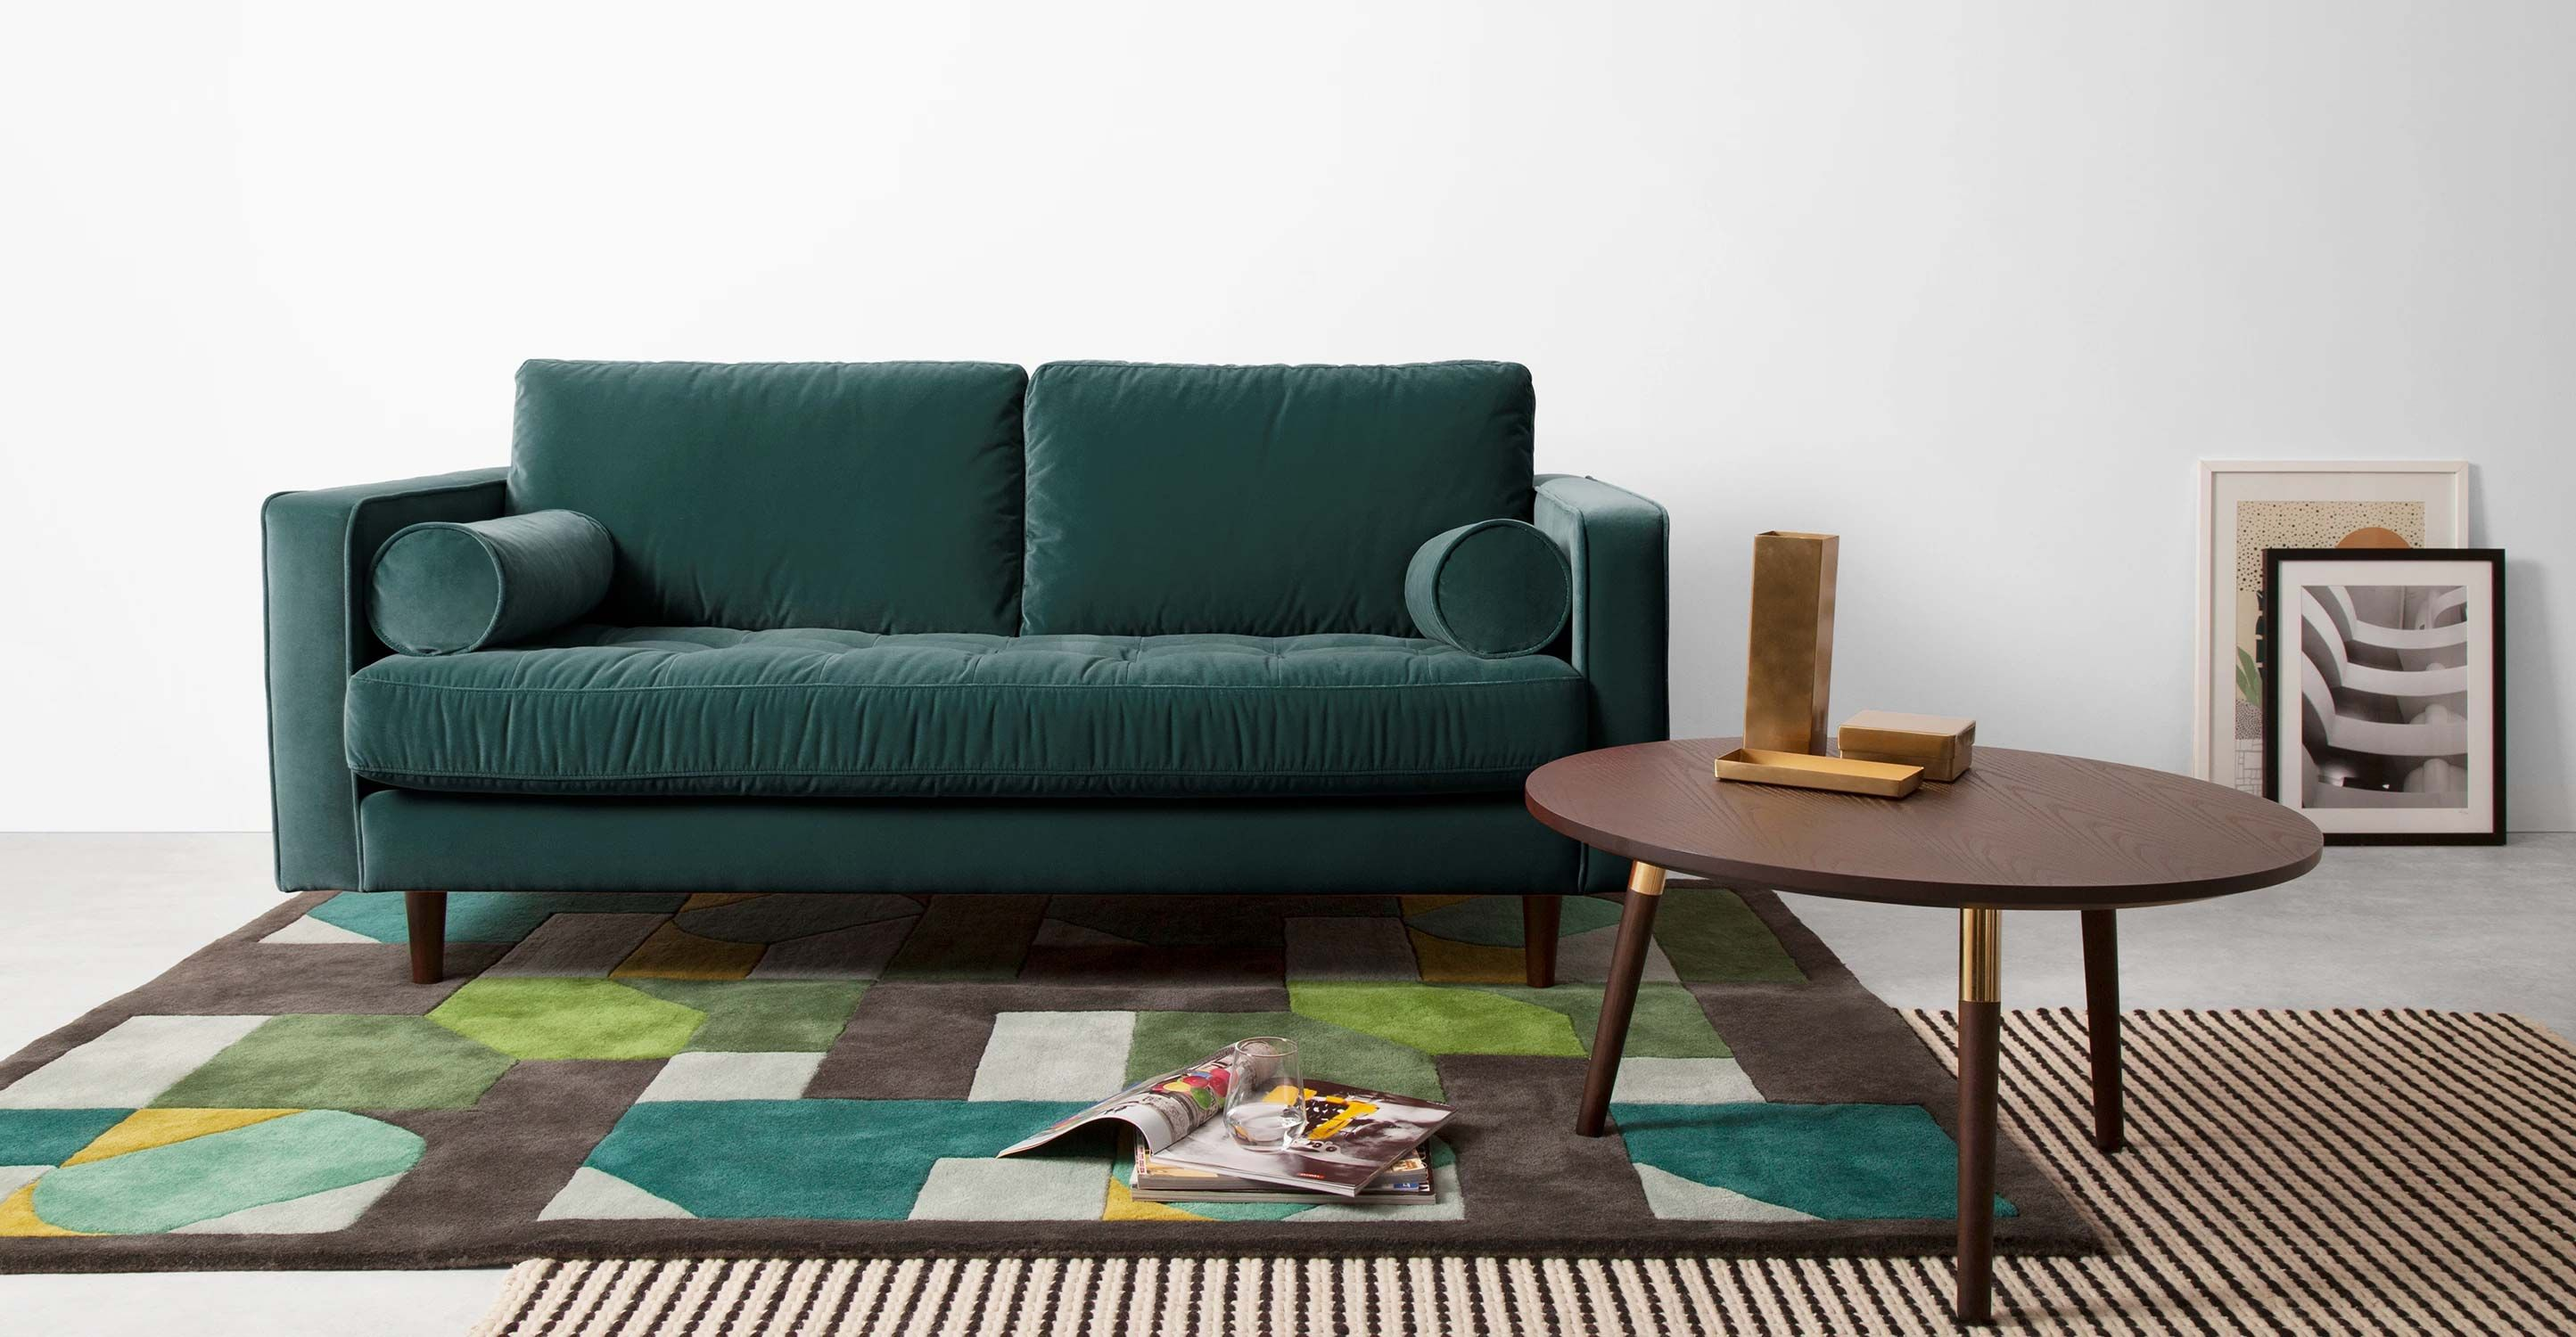 Scott large 2 seater sofa upholstered in a plush cotton velvet in a rich petrol